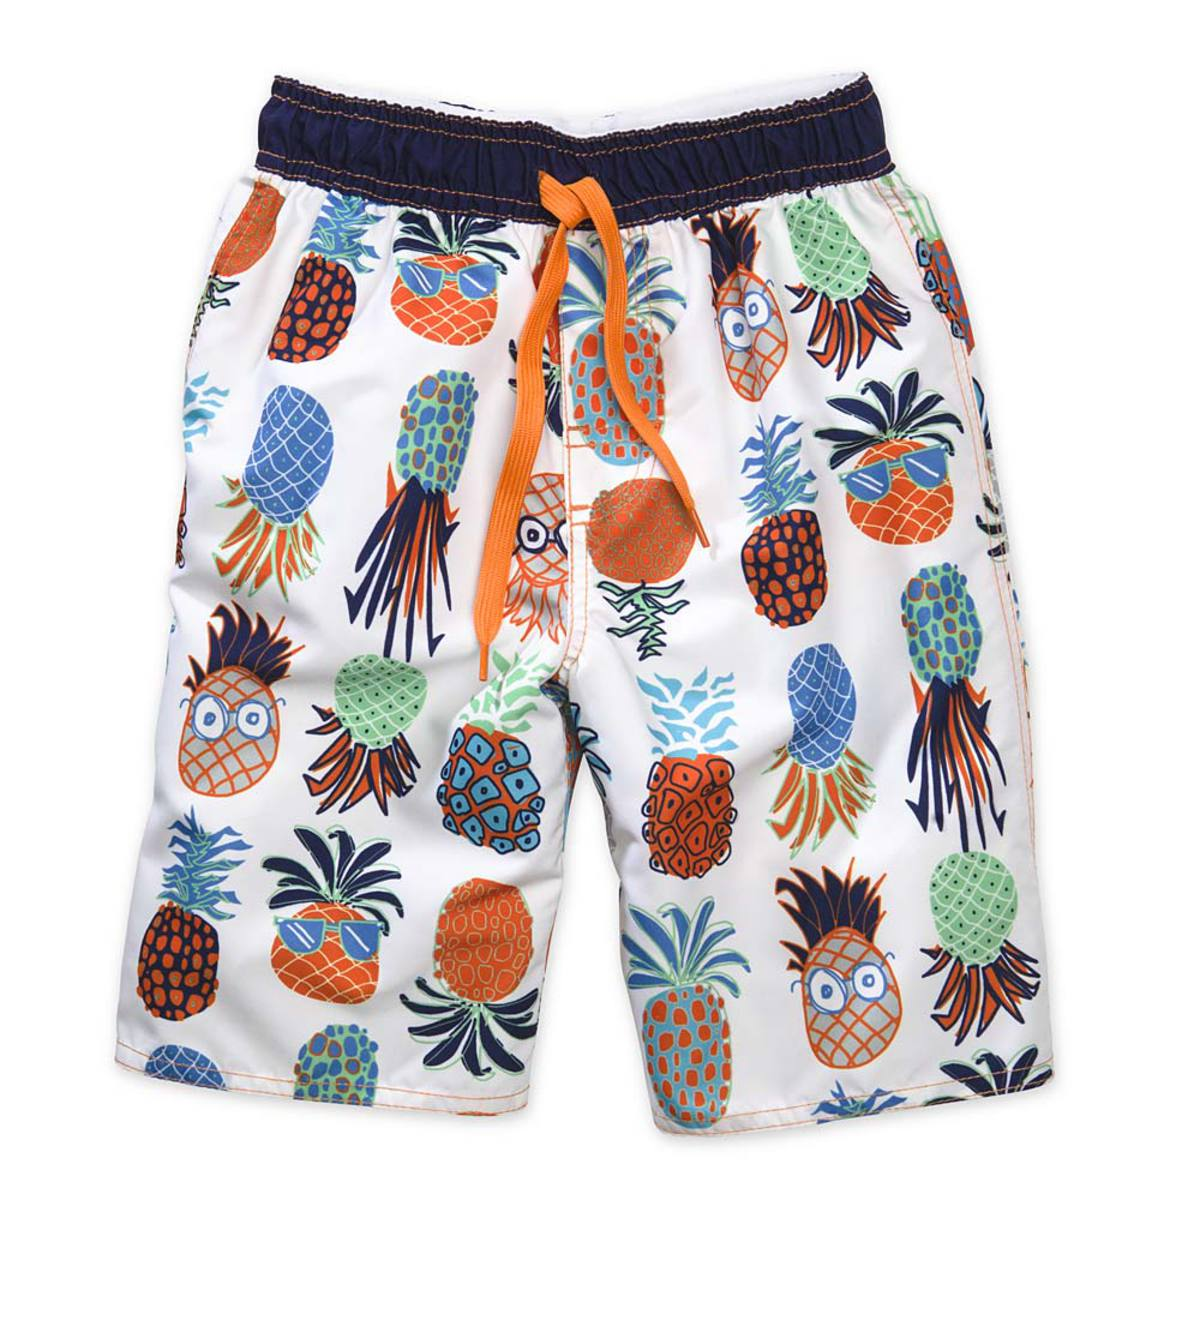 Pineapple Swim Trunks - Multi - 6